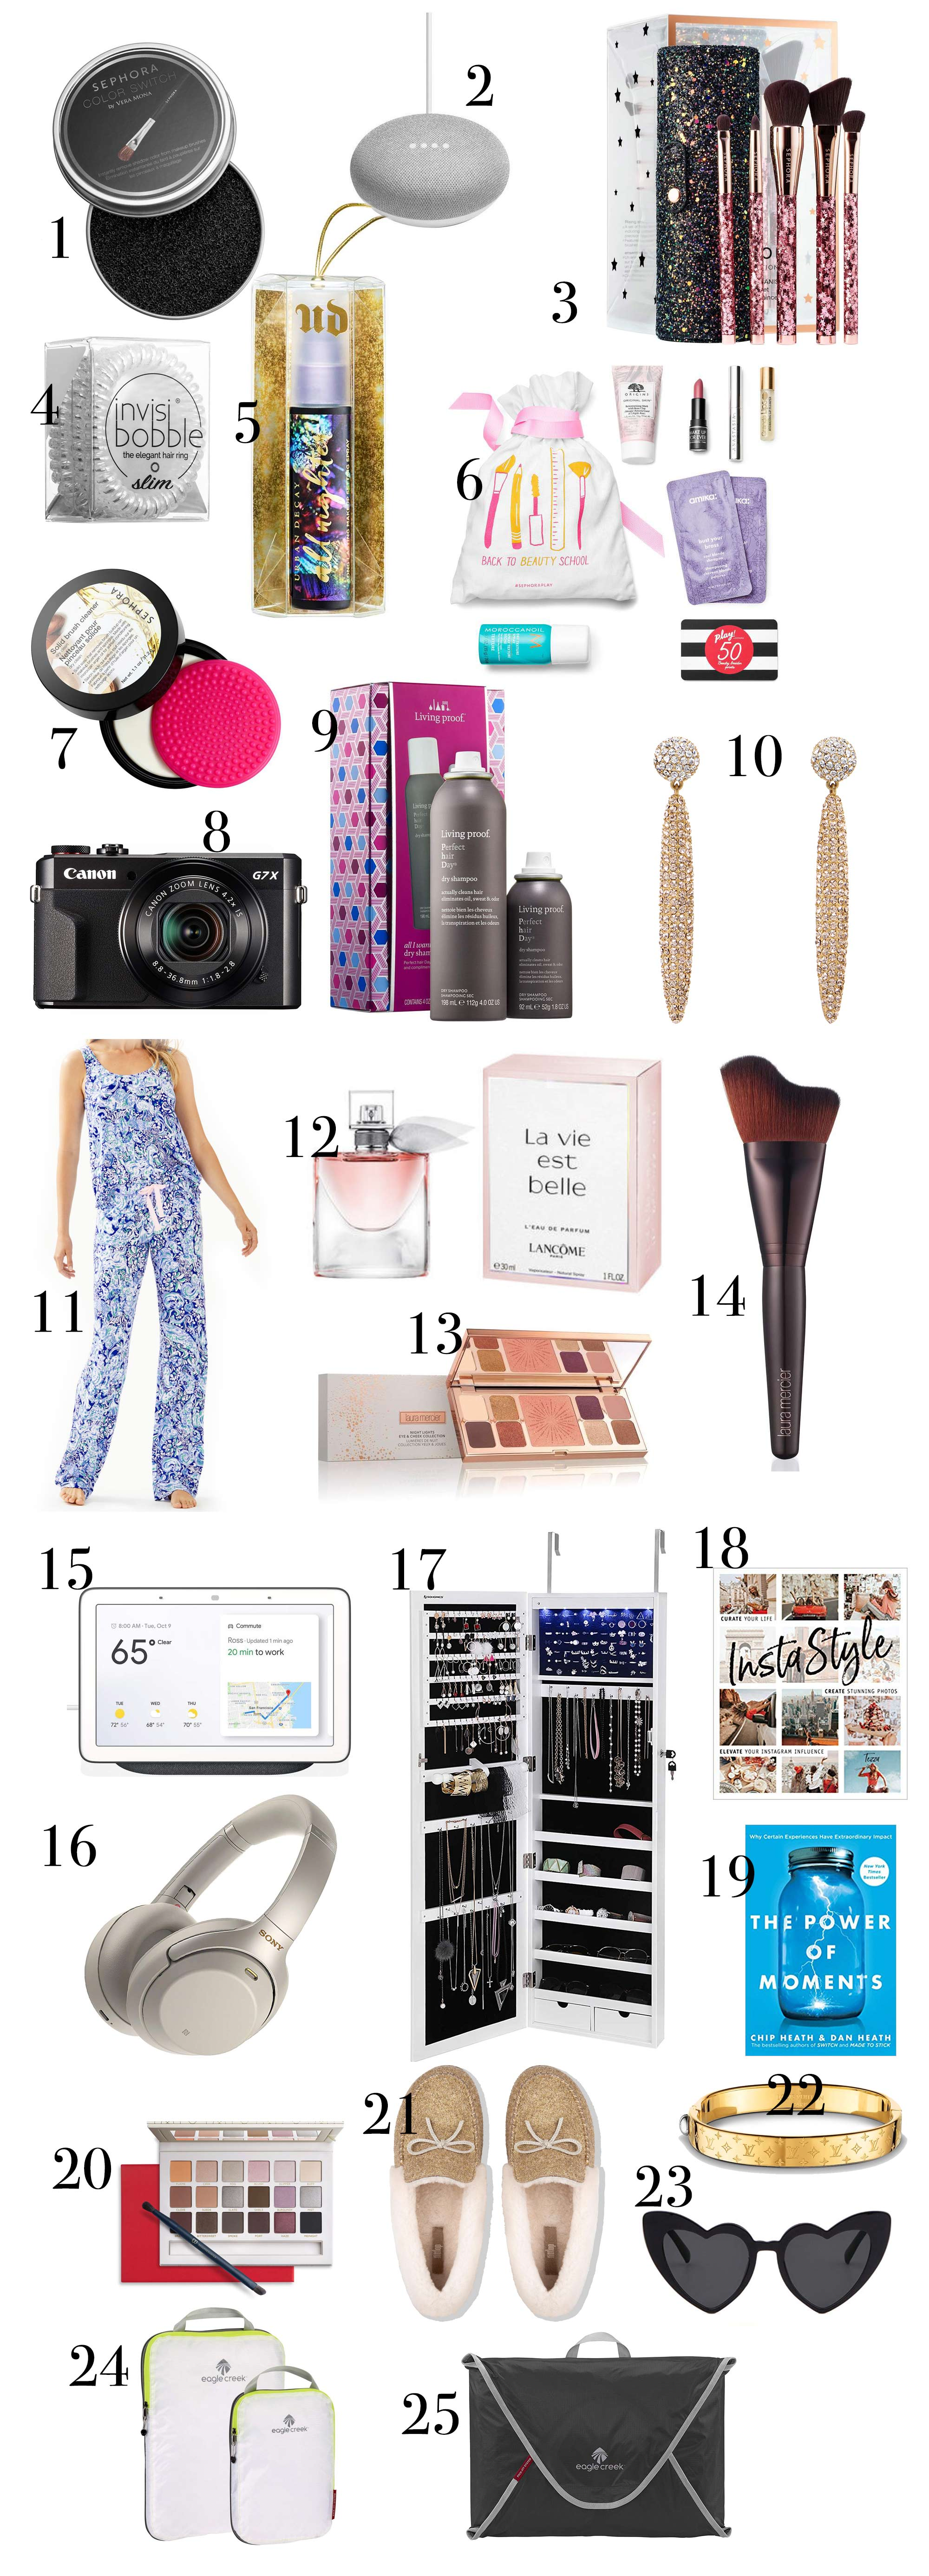 25 gift ideas for Christmas by lifestyle blogger Diana Elizabeth - she owns these items and highly recommends them